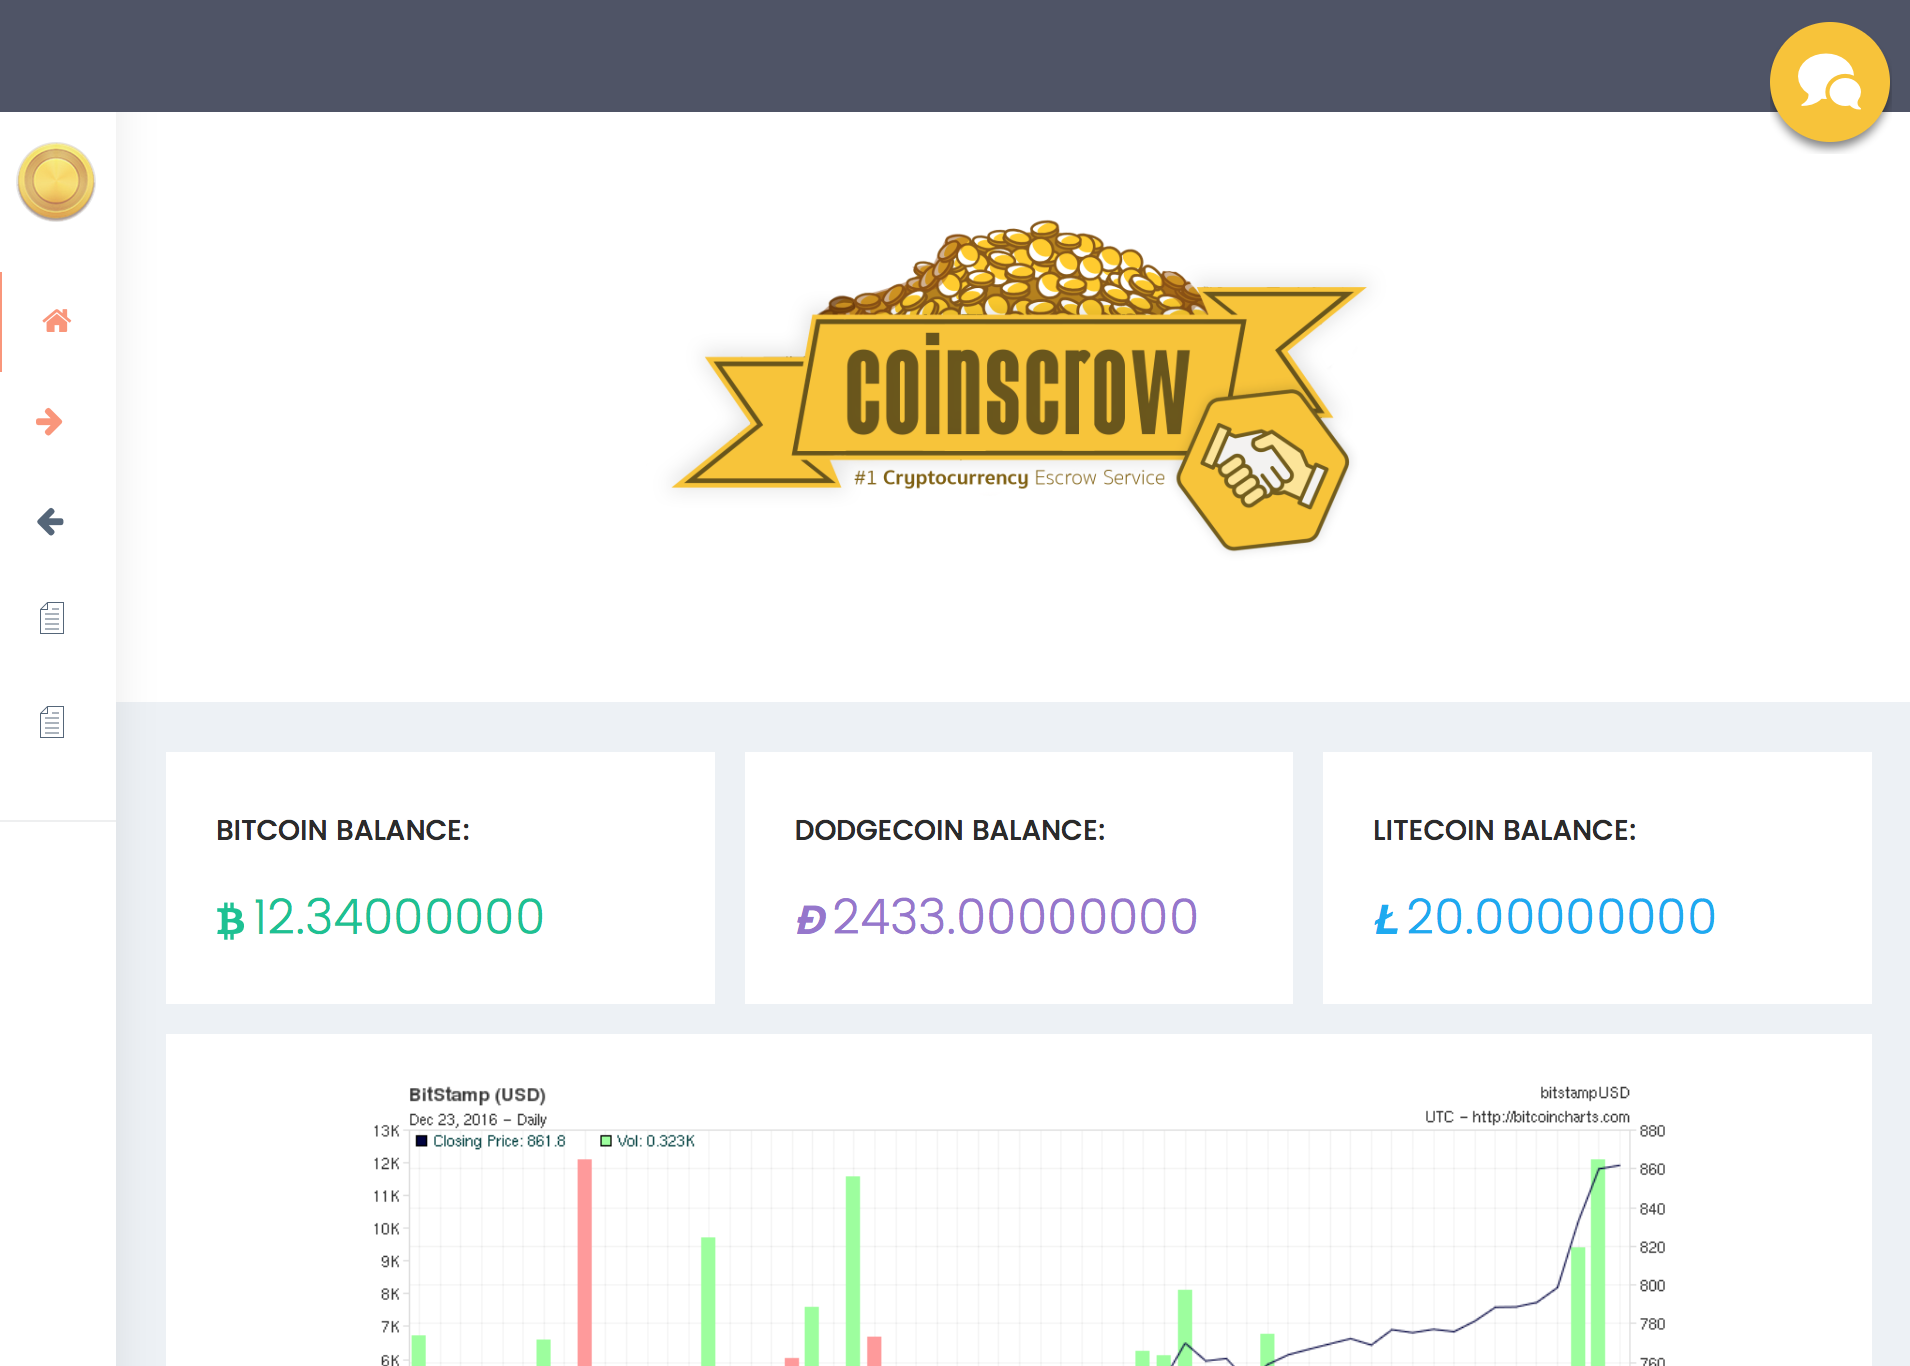 Coinscrow screenshot